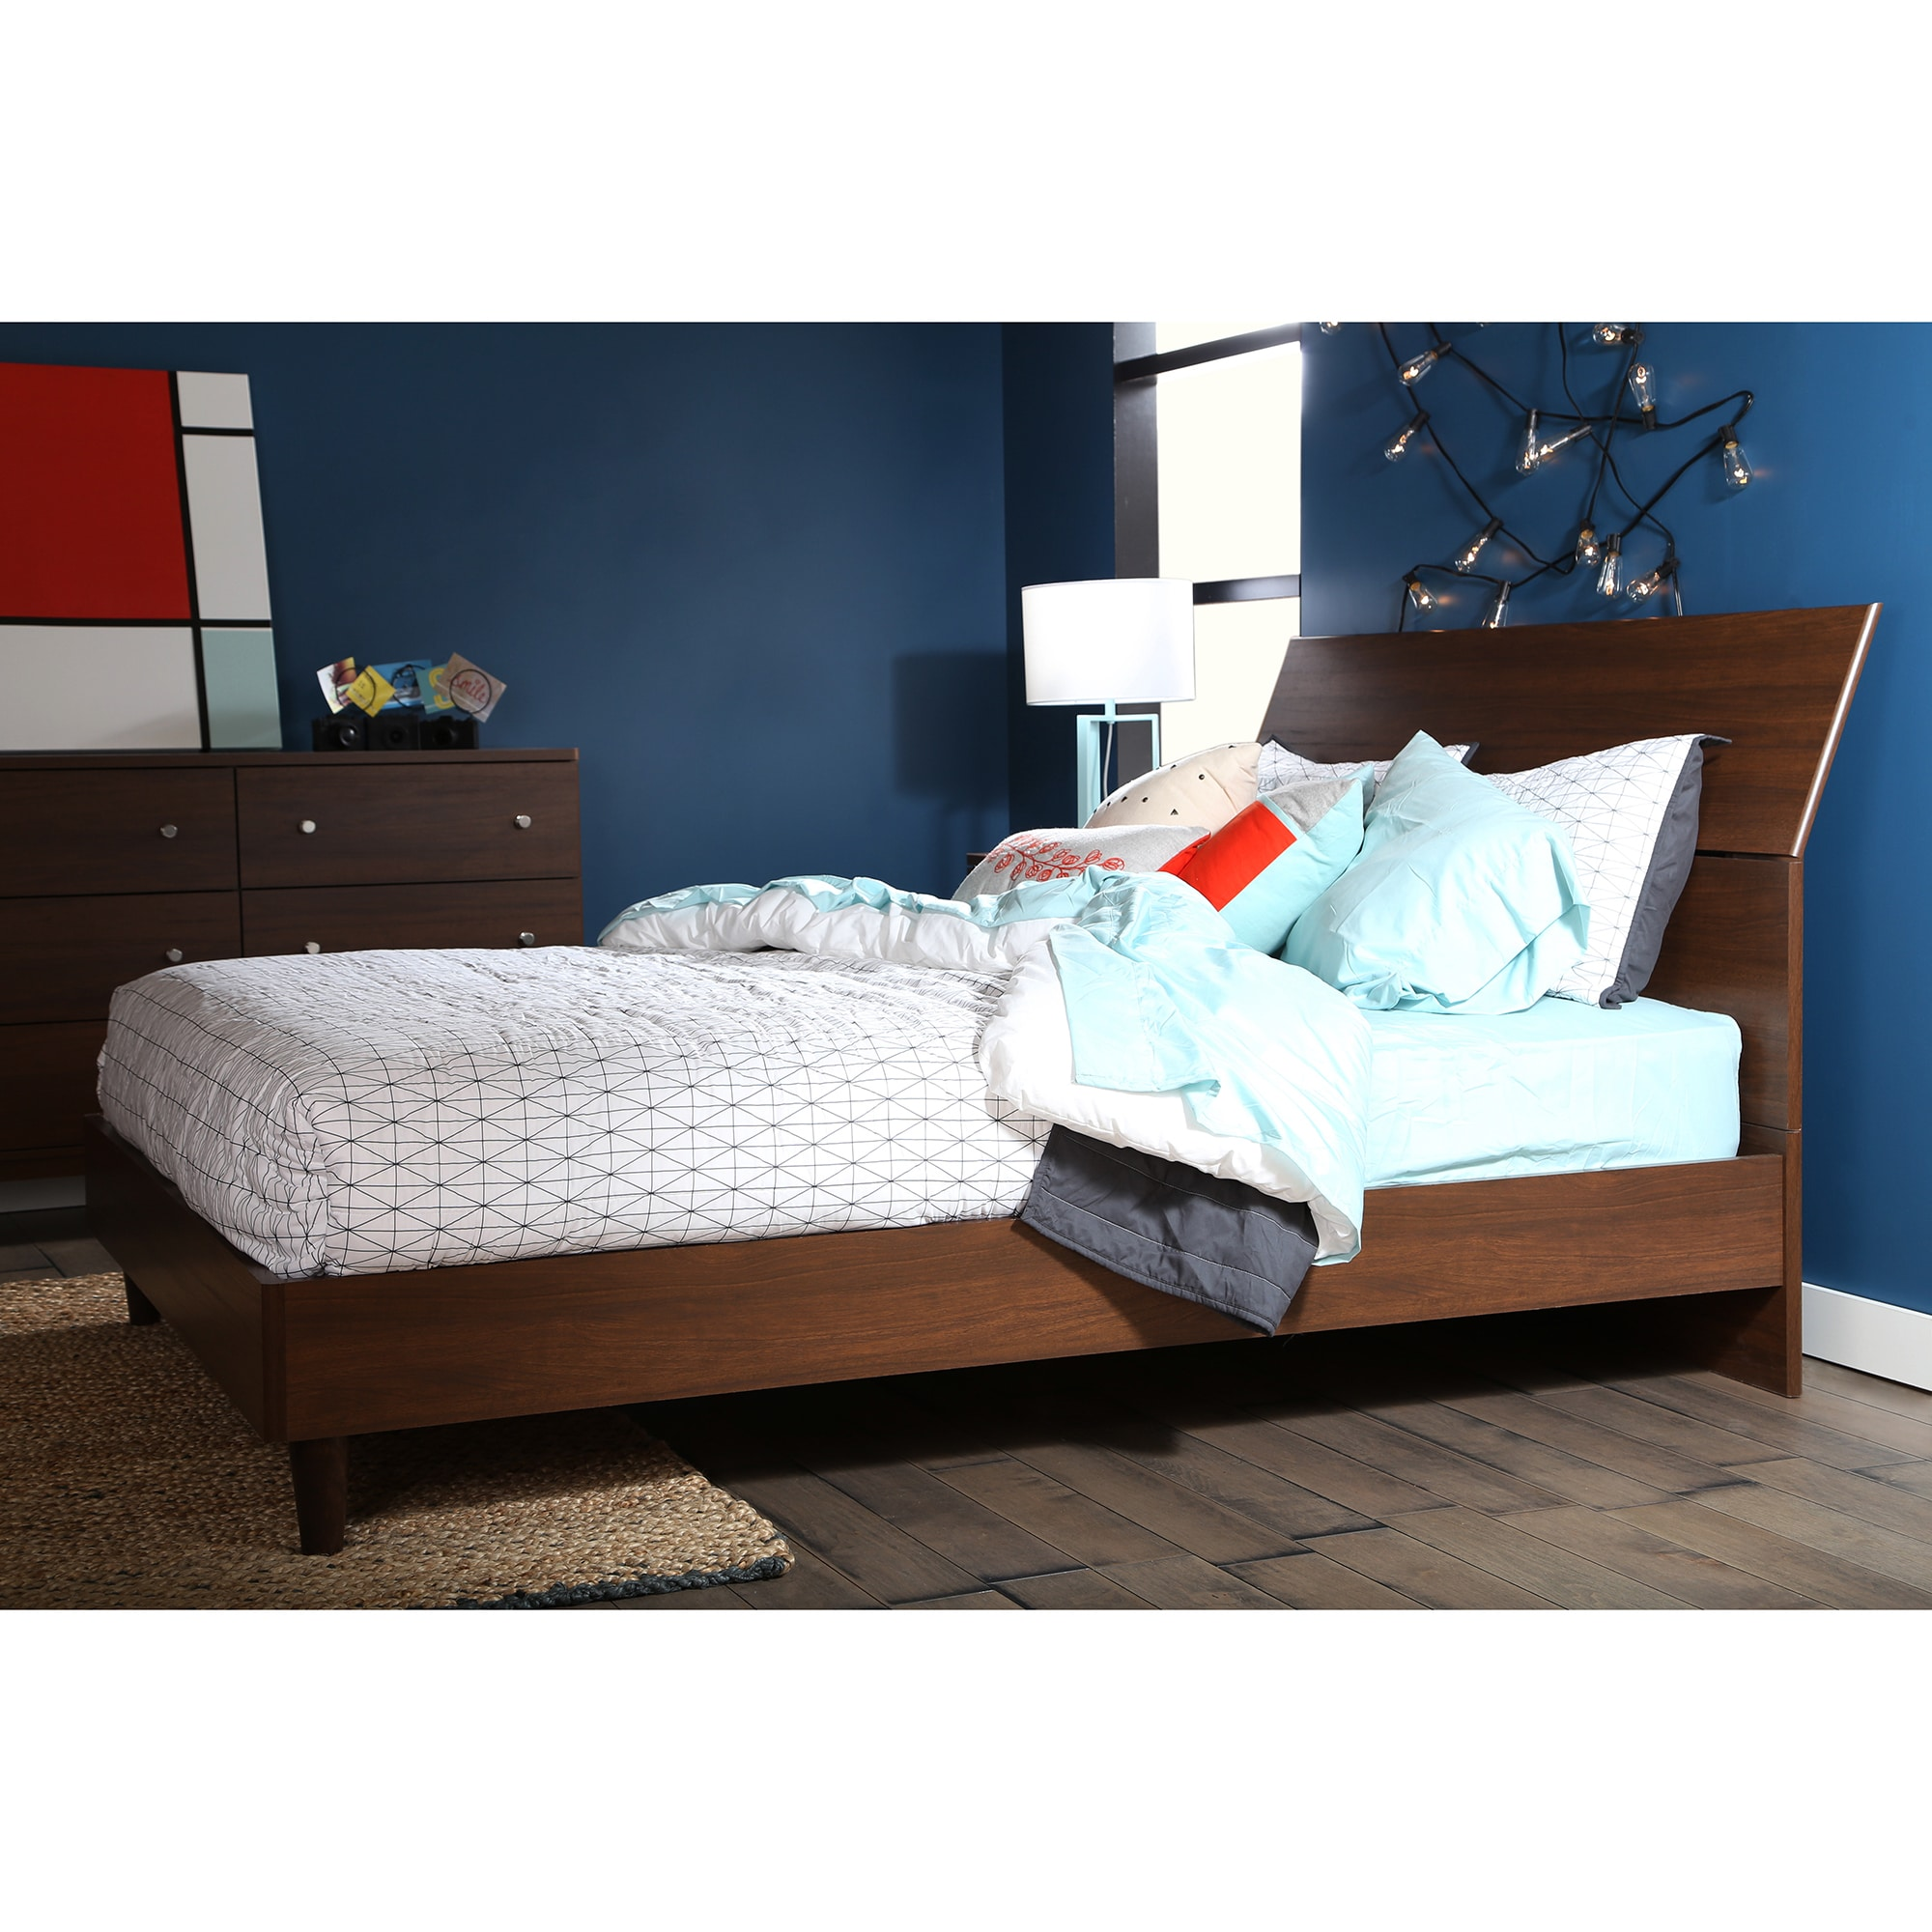 south shore olly midcentury modern queen platform bed with headboard free shipping today  overstockcom  . south shore olly midcentury modern queen platform bed with